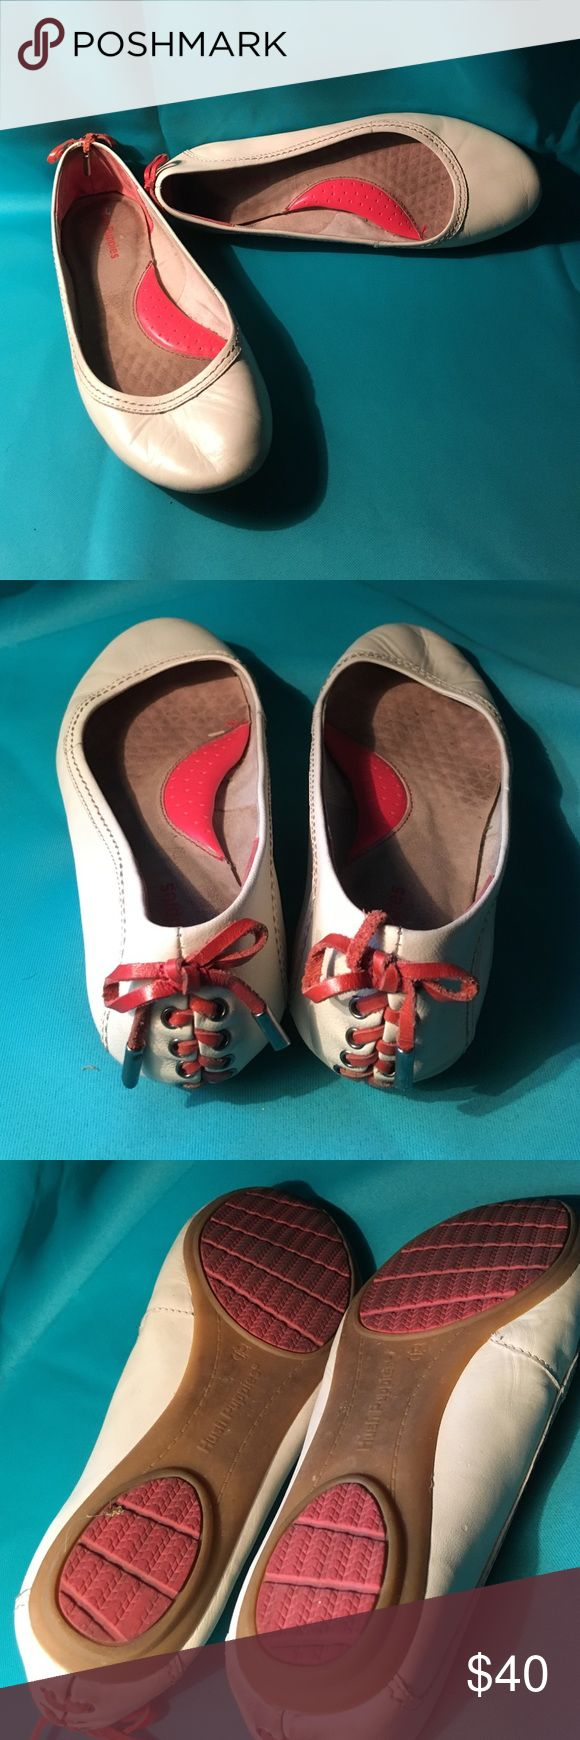 Looking for cute and comfortable??? Hush puppies cream flats with a melon detail down the back. Gently worn with the only signs of wear on vida le on the bottom of the shoes.  Great condition. Hush Puppies Shoes Flats & Loafers